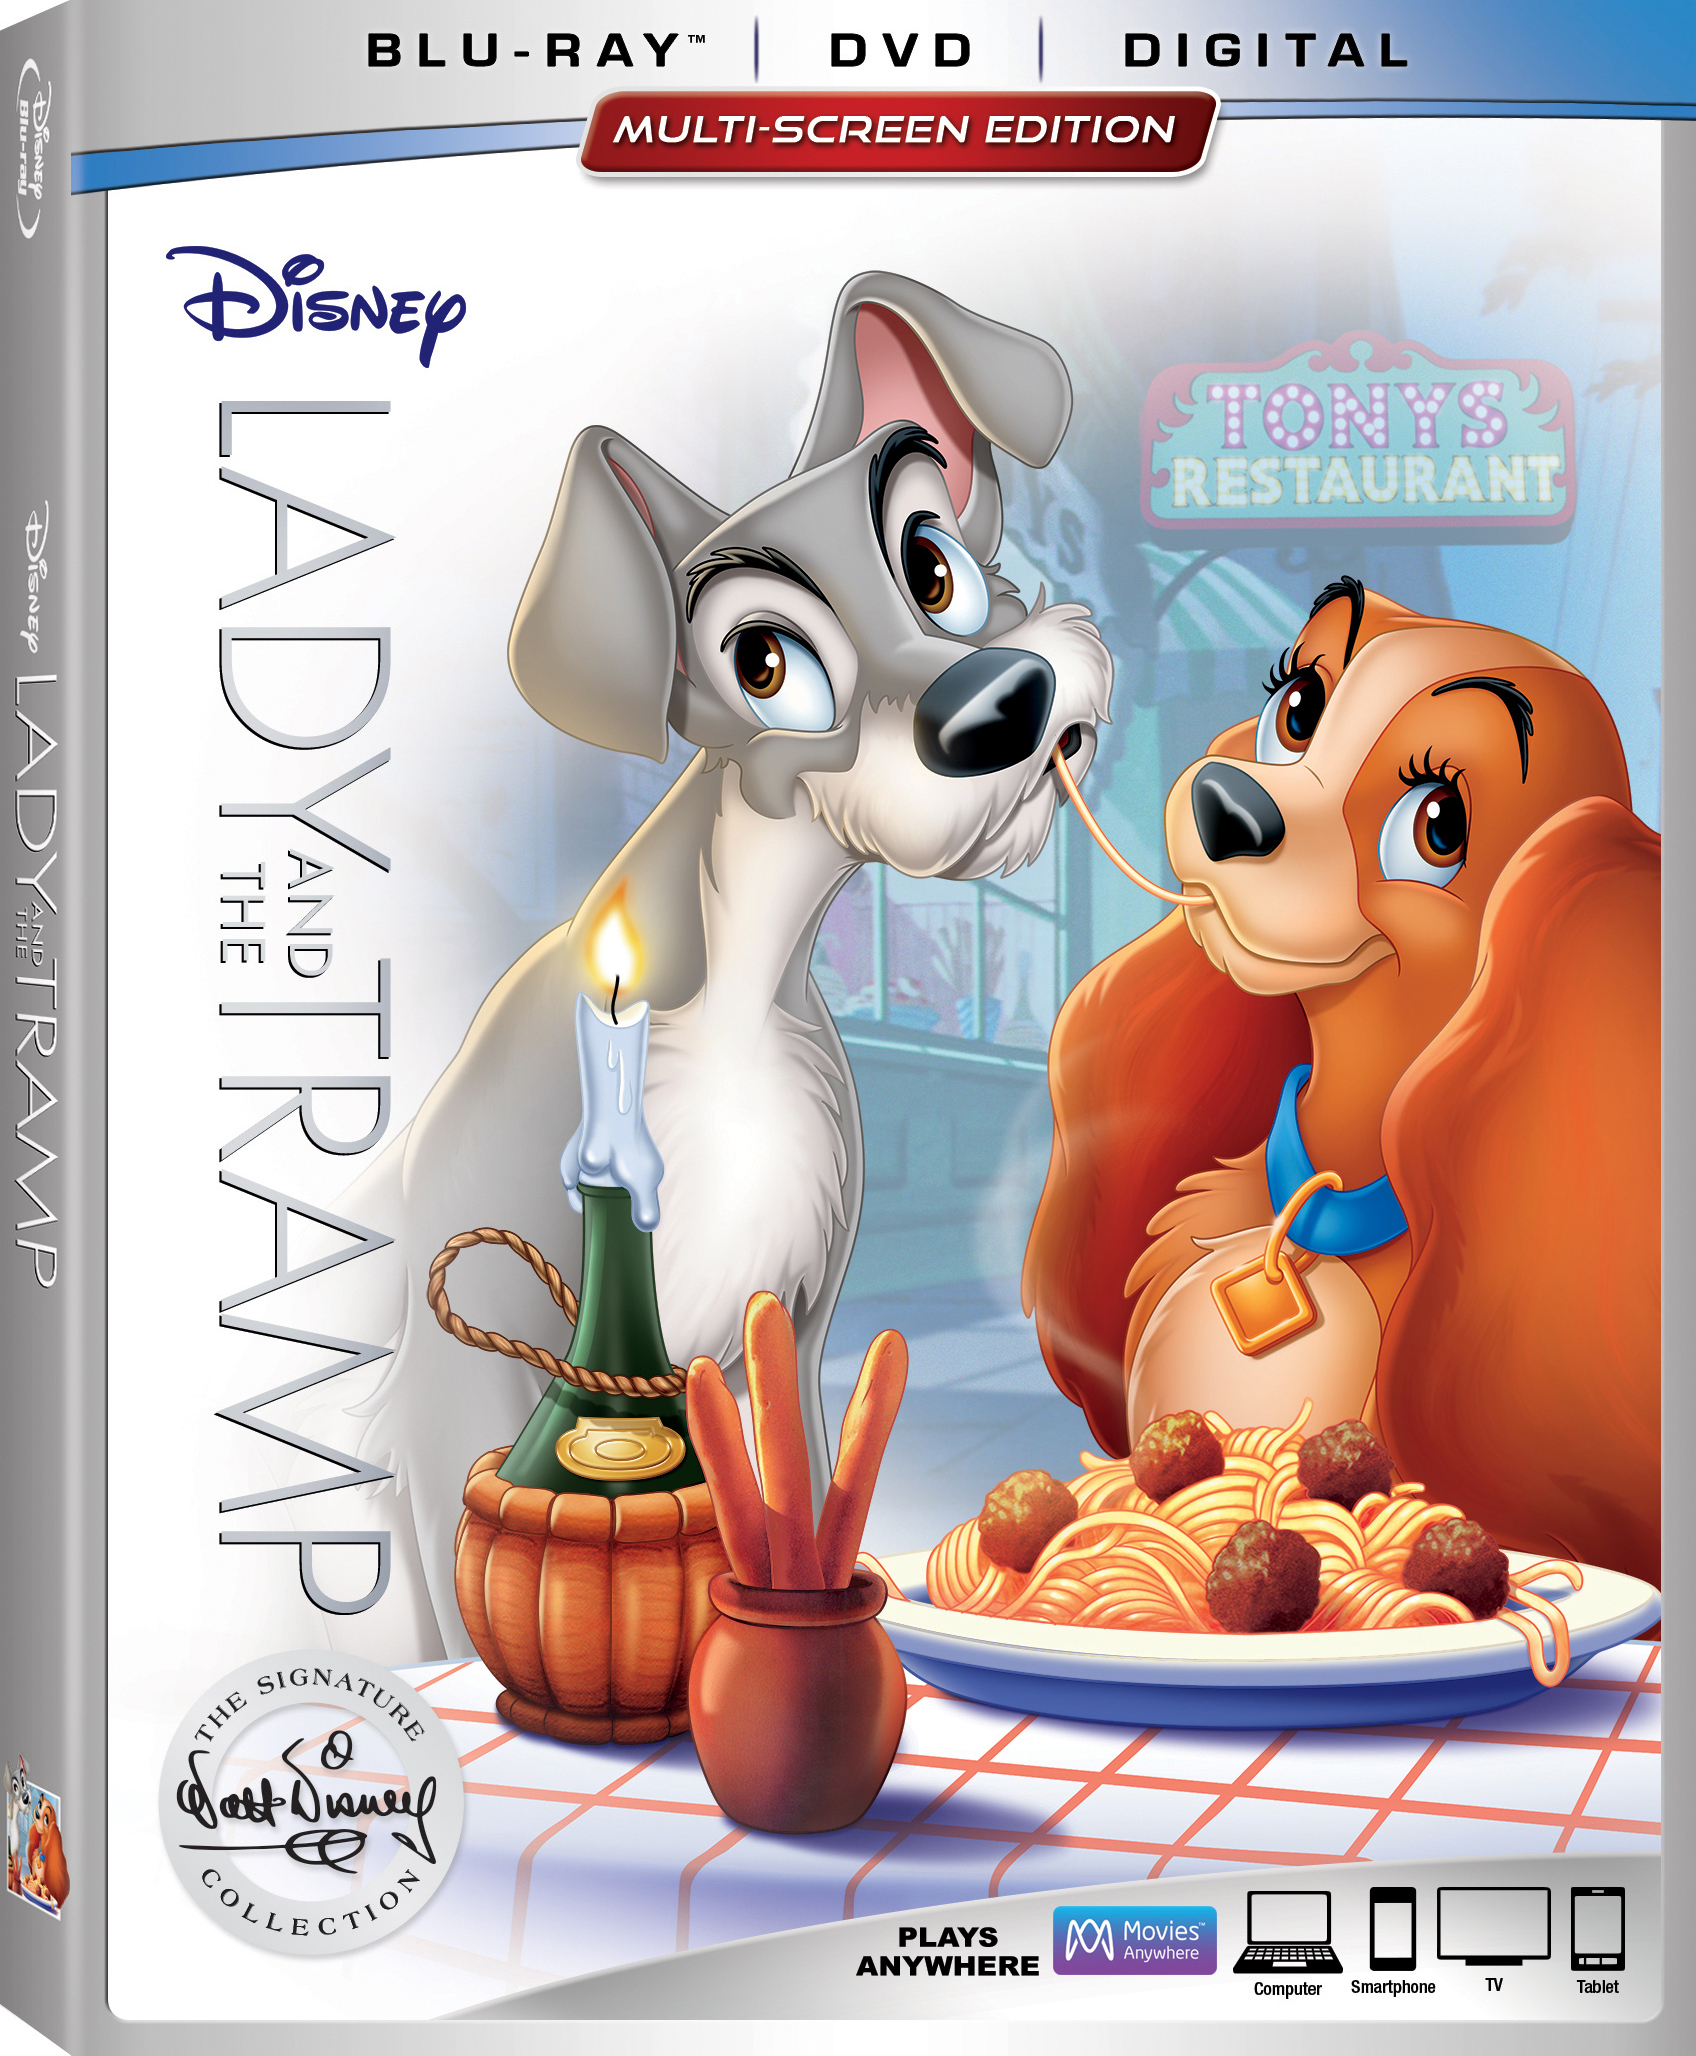 Lady and the Tramp (The Signature Collection)(1955) Blu-ray